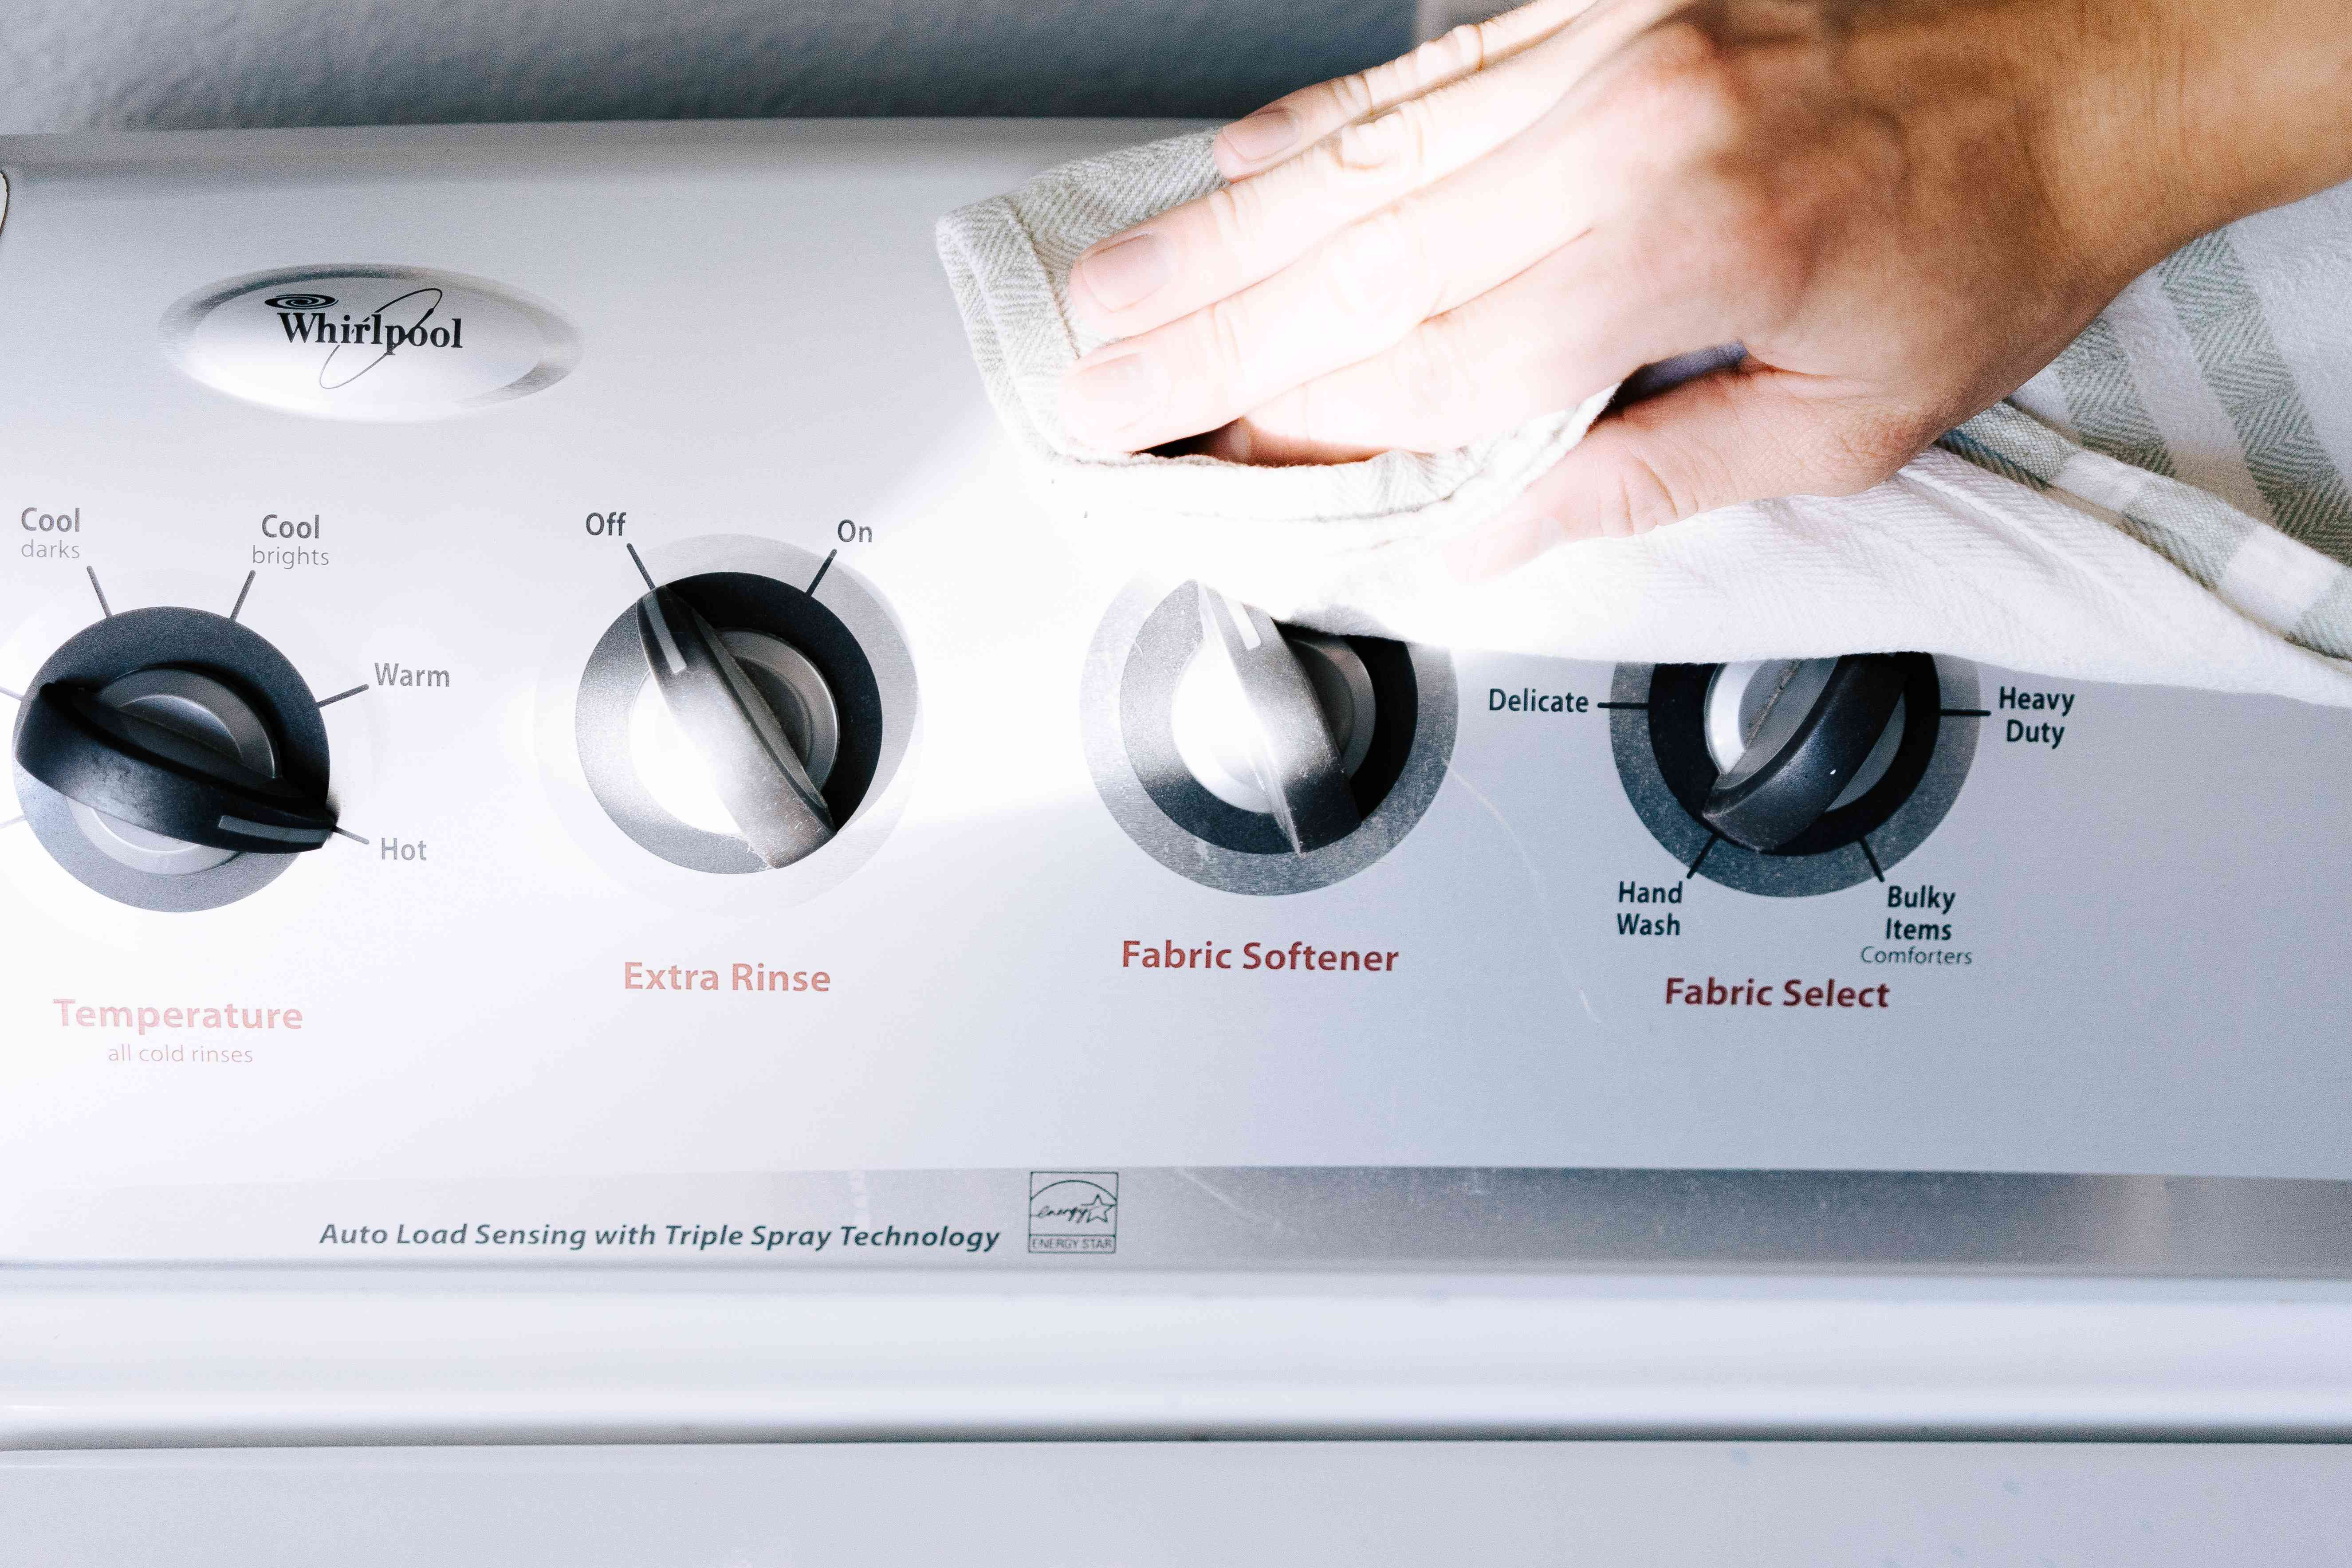 wiping down the outside of the washer